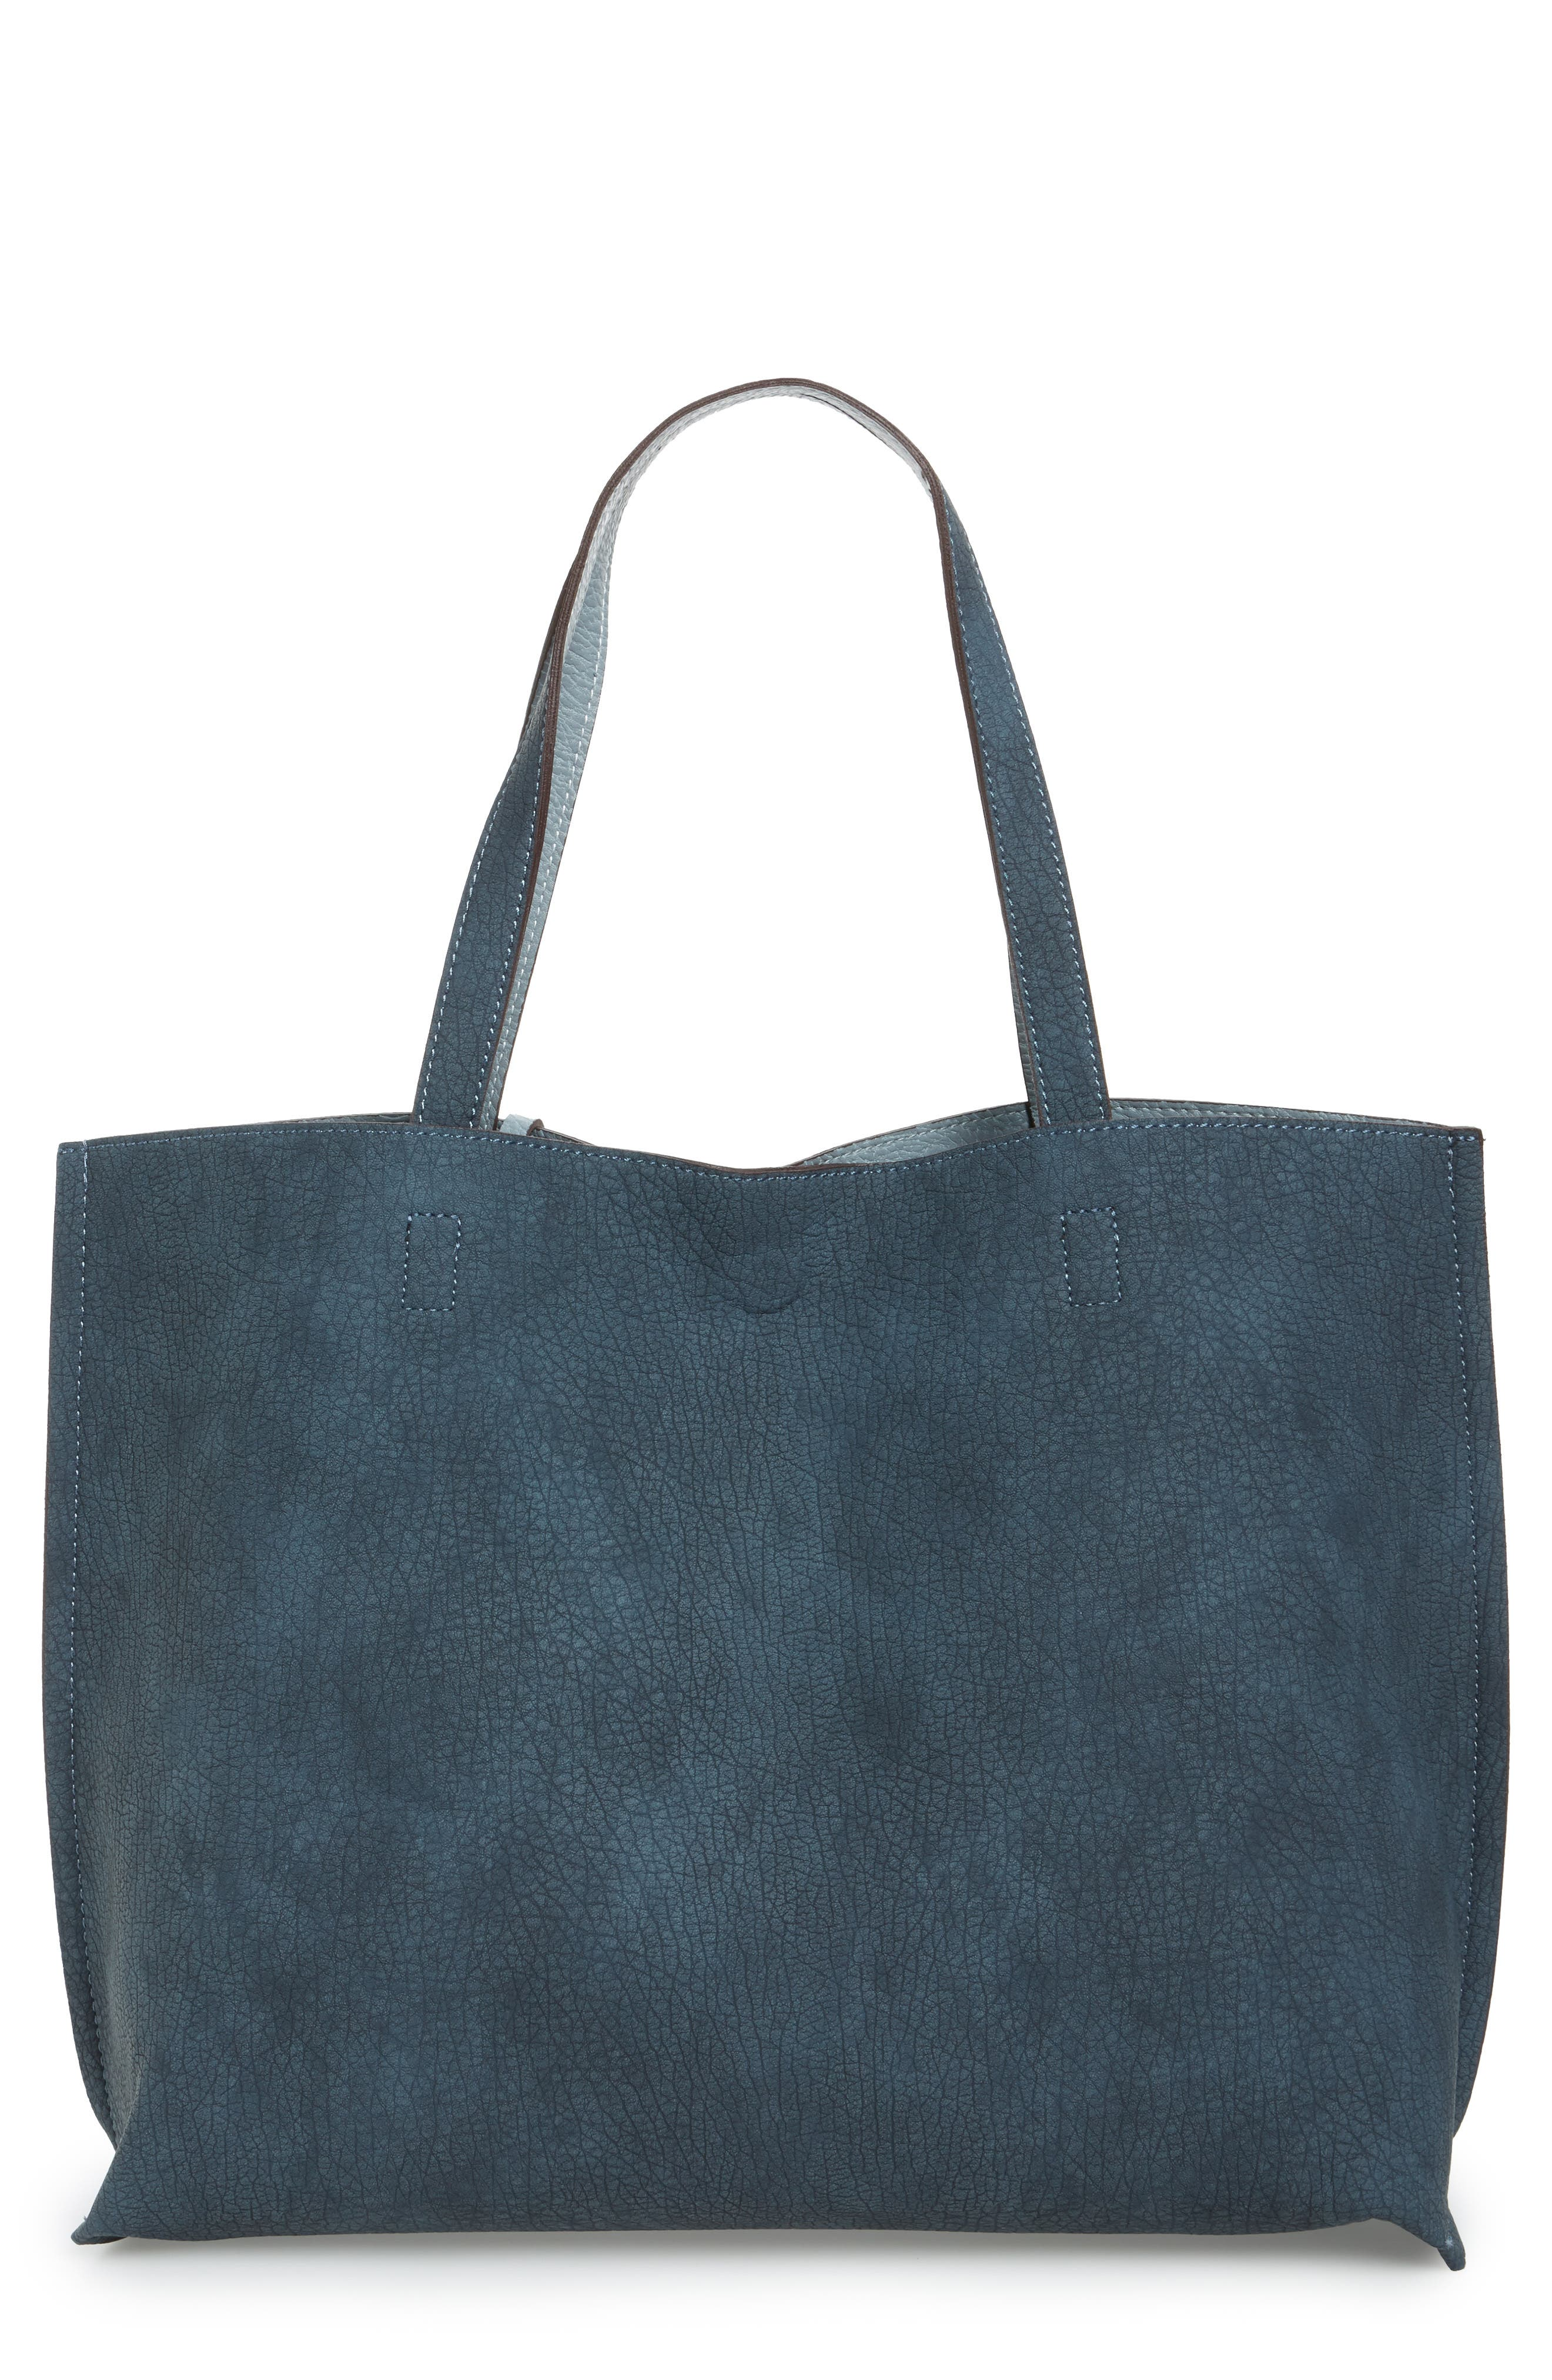 Reversible Faux Leather Tote,                         Main,                         color, 020